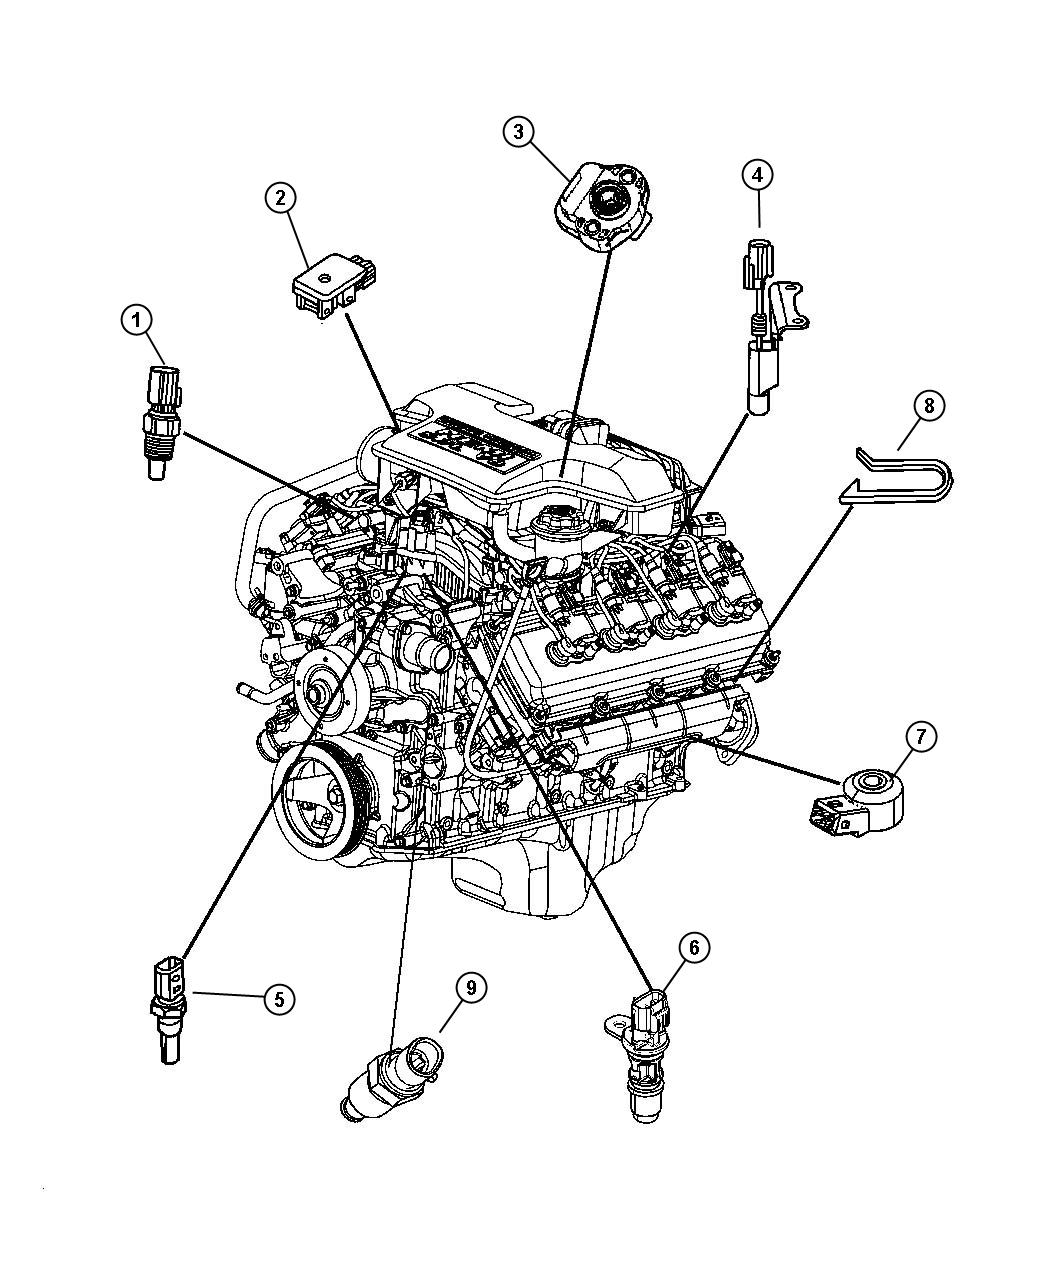 Dodge Ram Sensor Crankshaft Position Engine